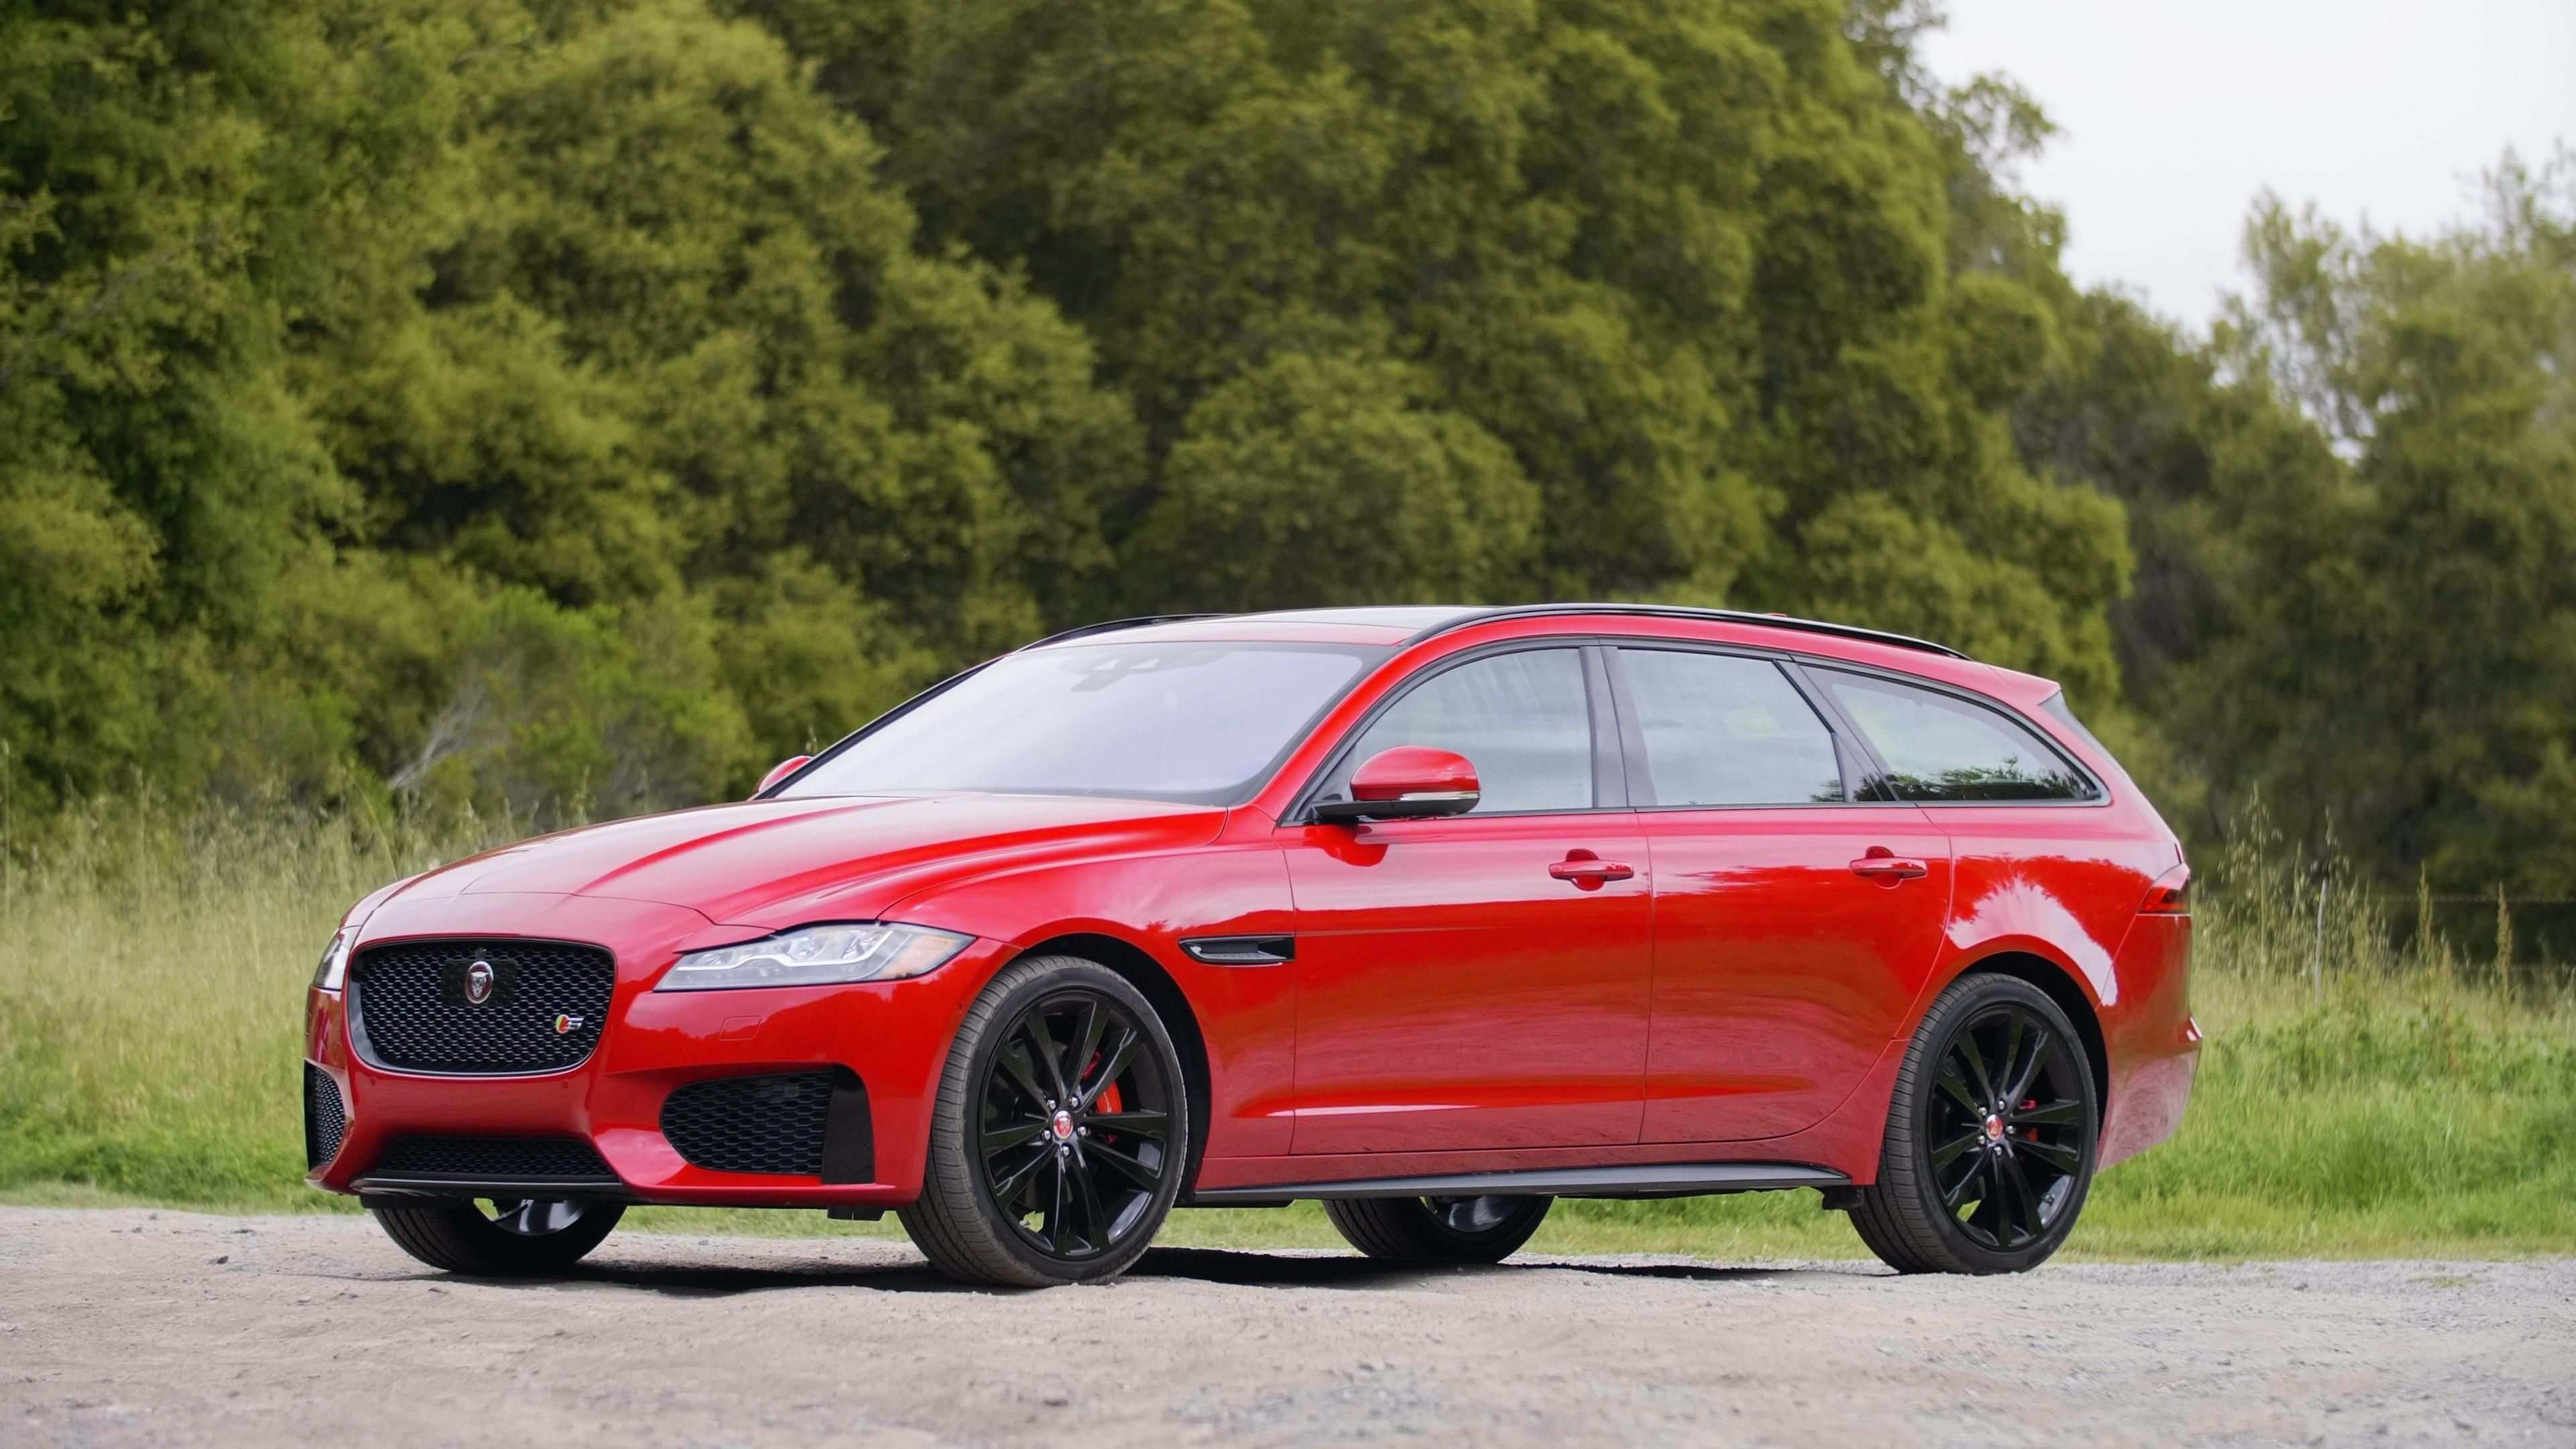 72 All New 2019 Jaguar Wagon Redesign for 2019 Jaguar Wagon